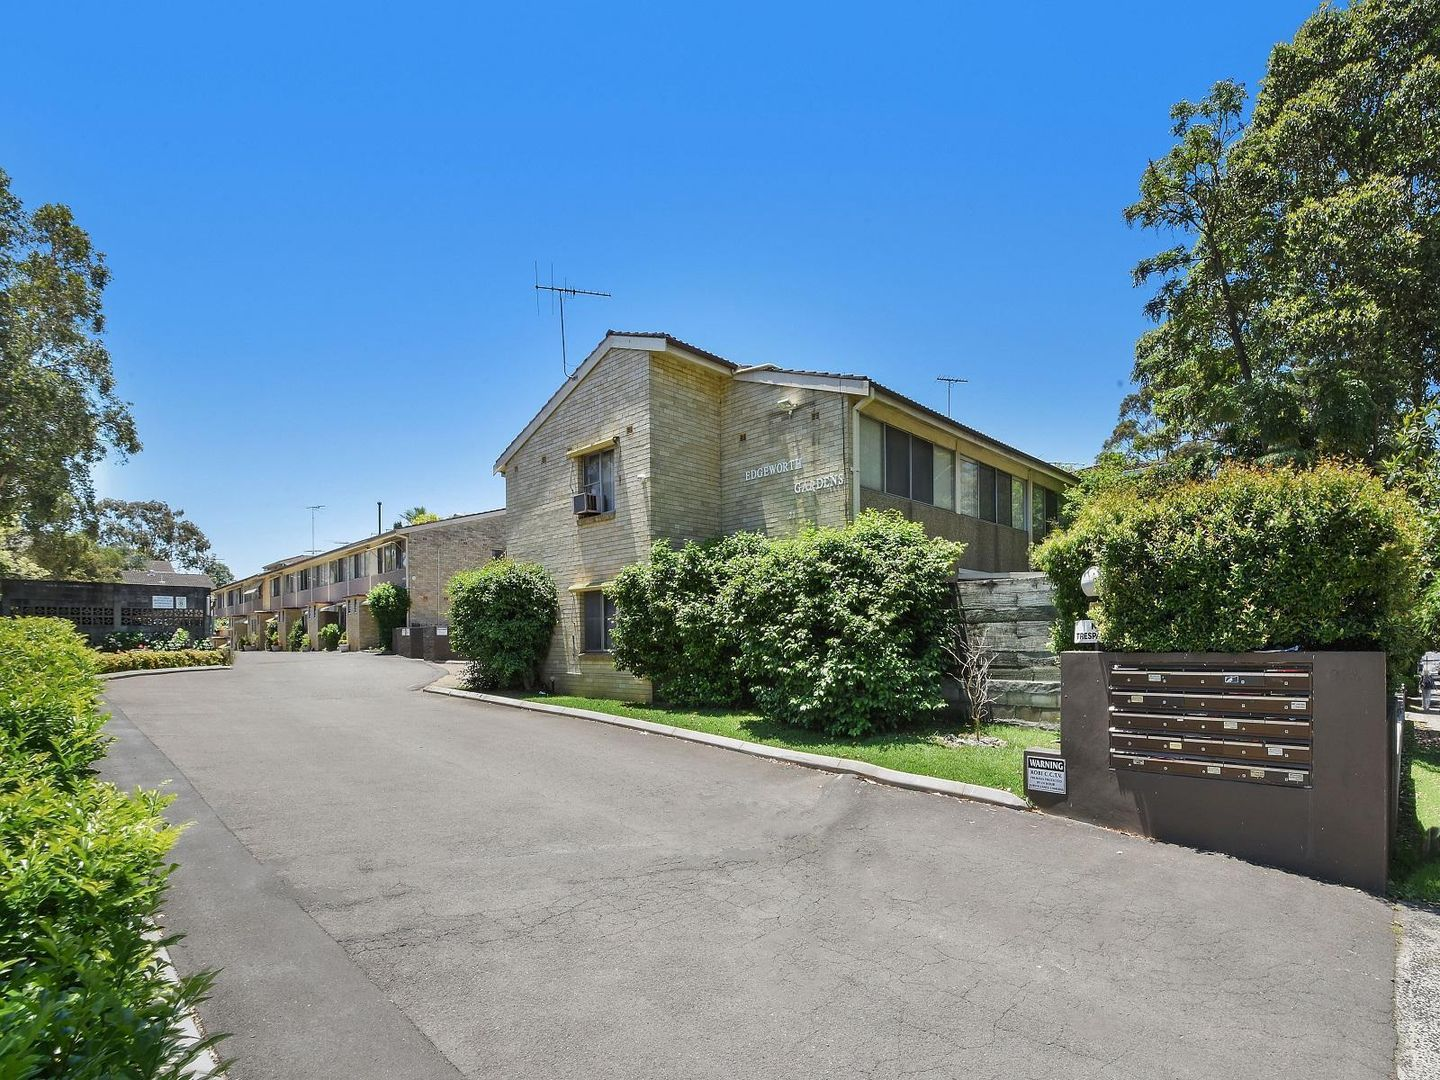 20/21 Edgeworth David Avenue, Hornsby NSW 2077, Image 0